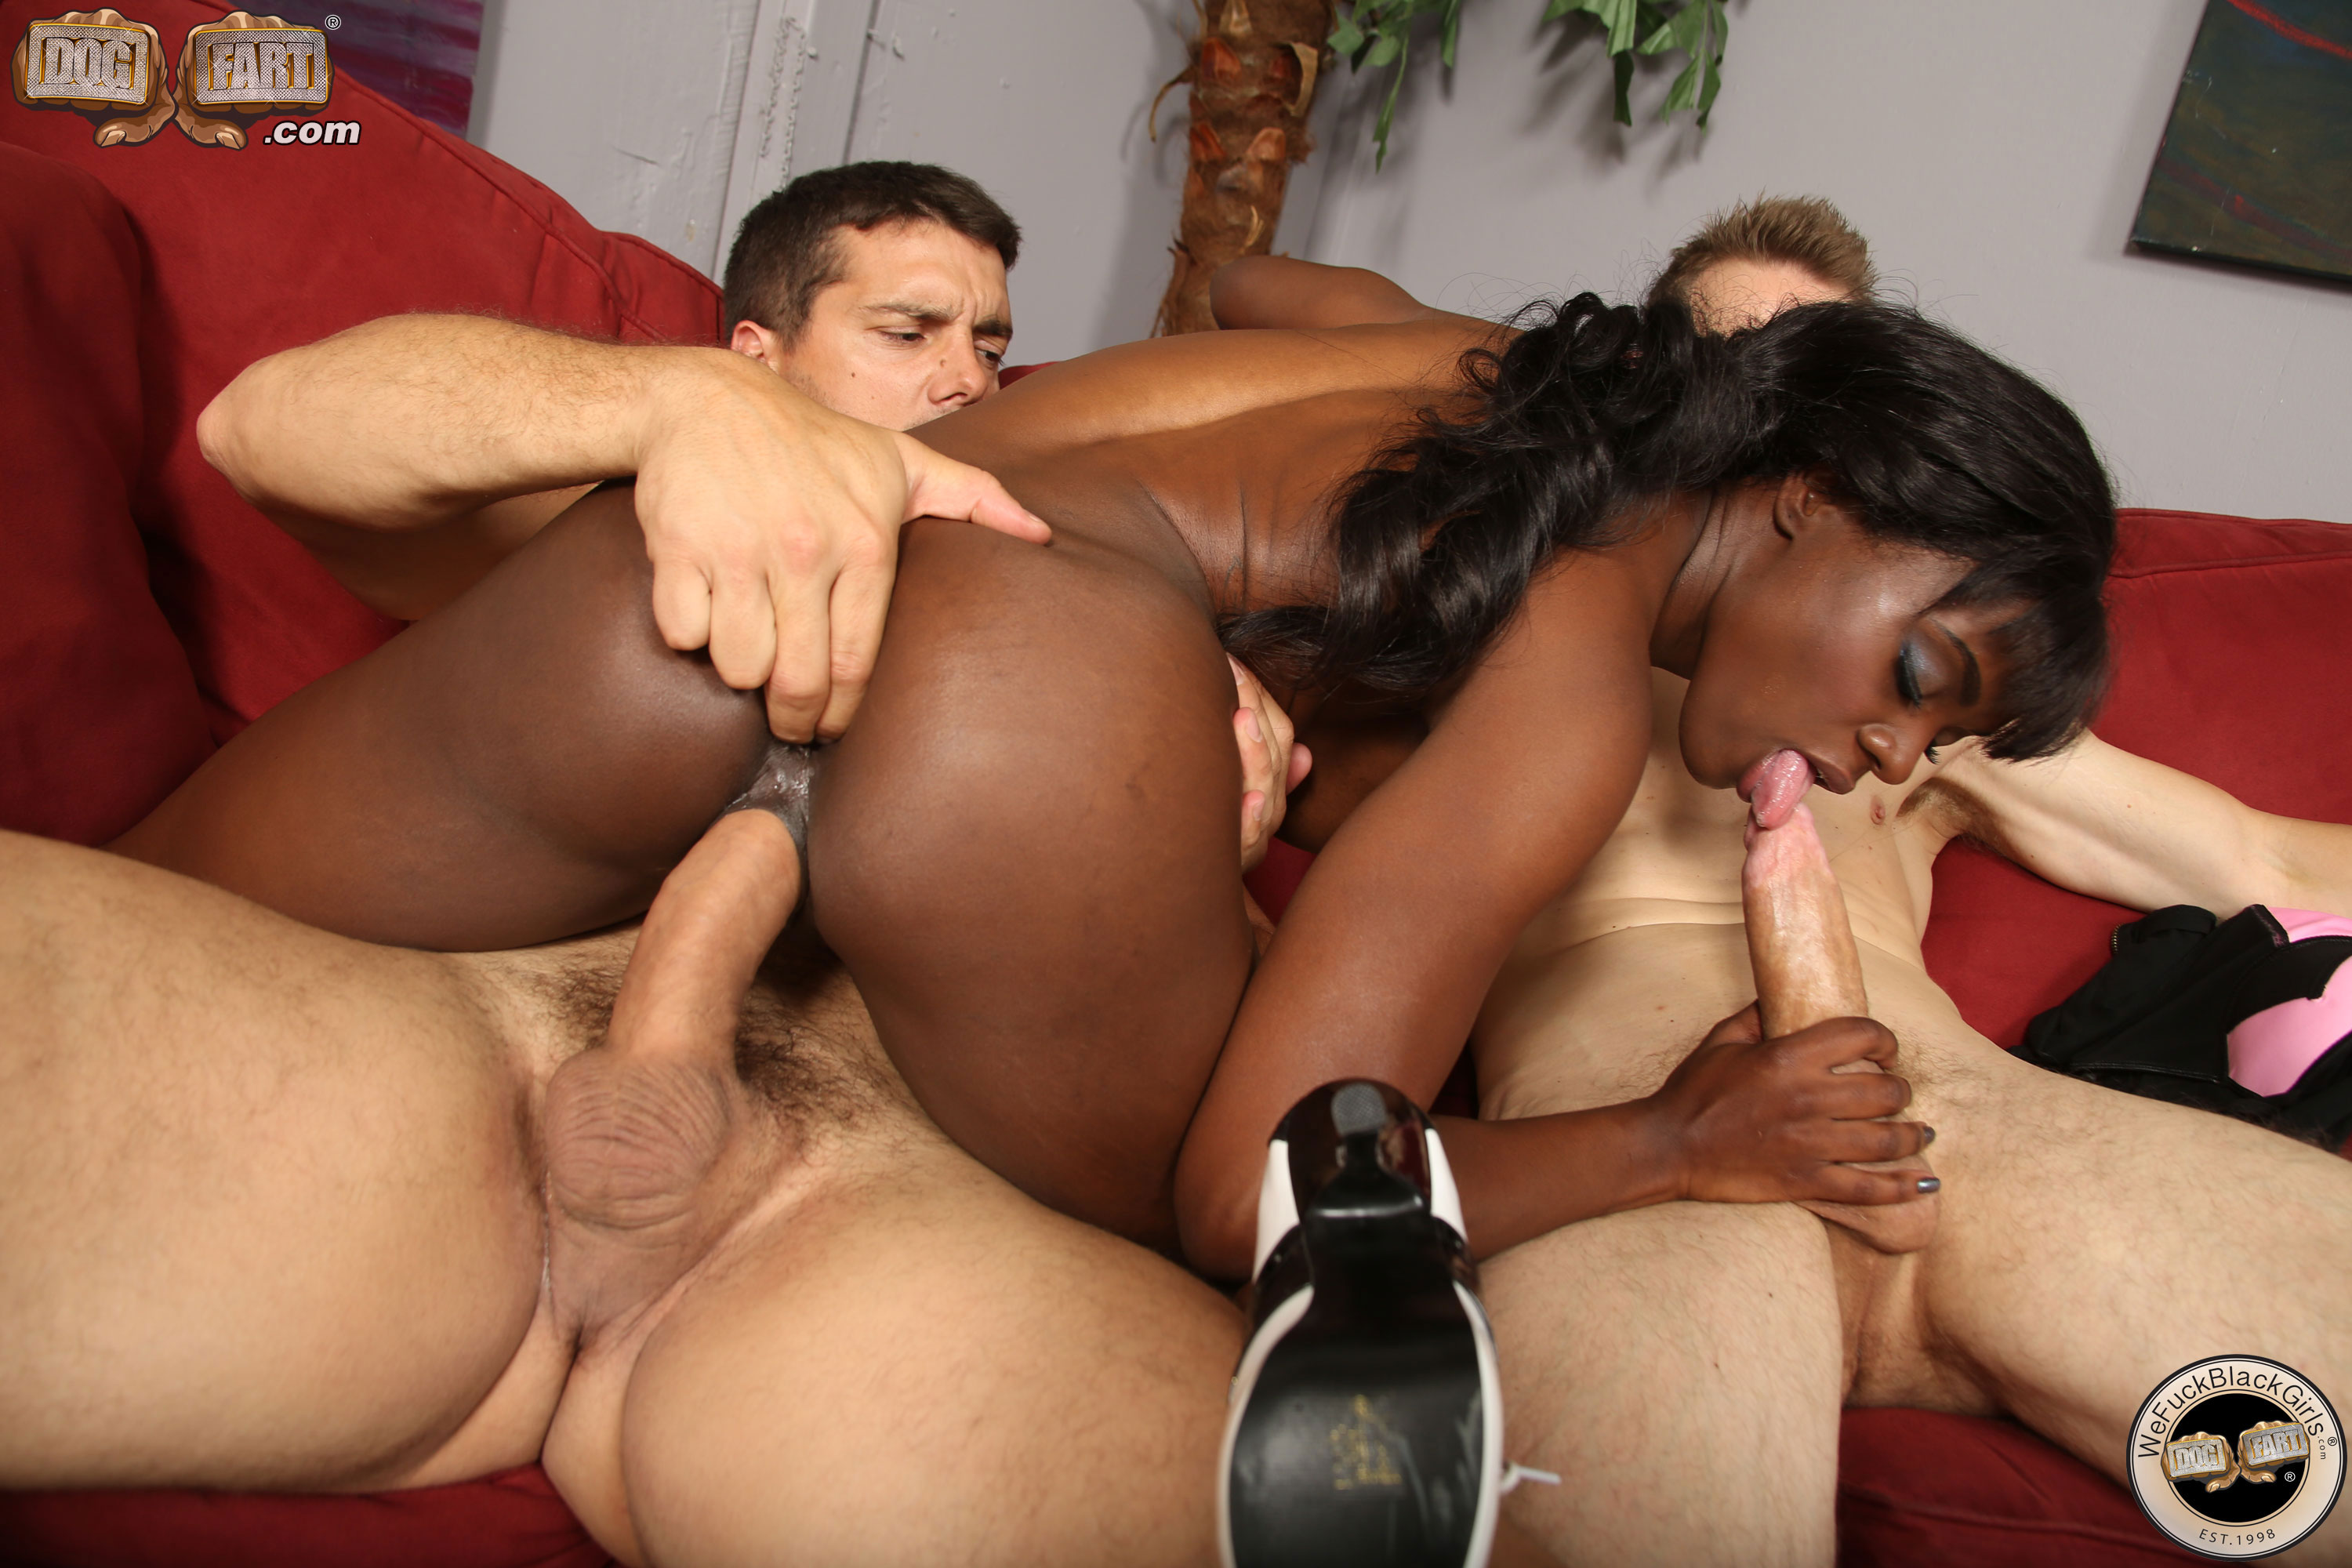 hot-black-women-getting-rammed-hard-porn